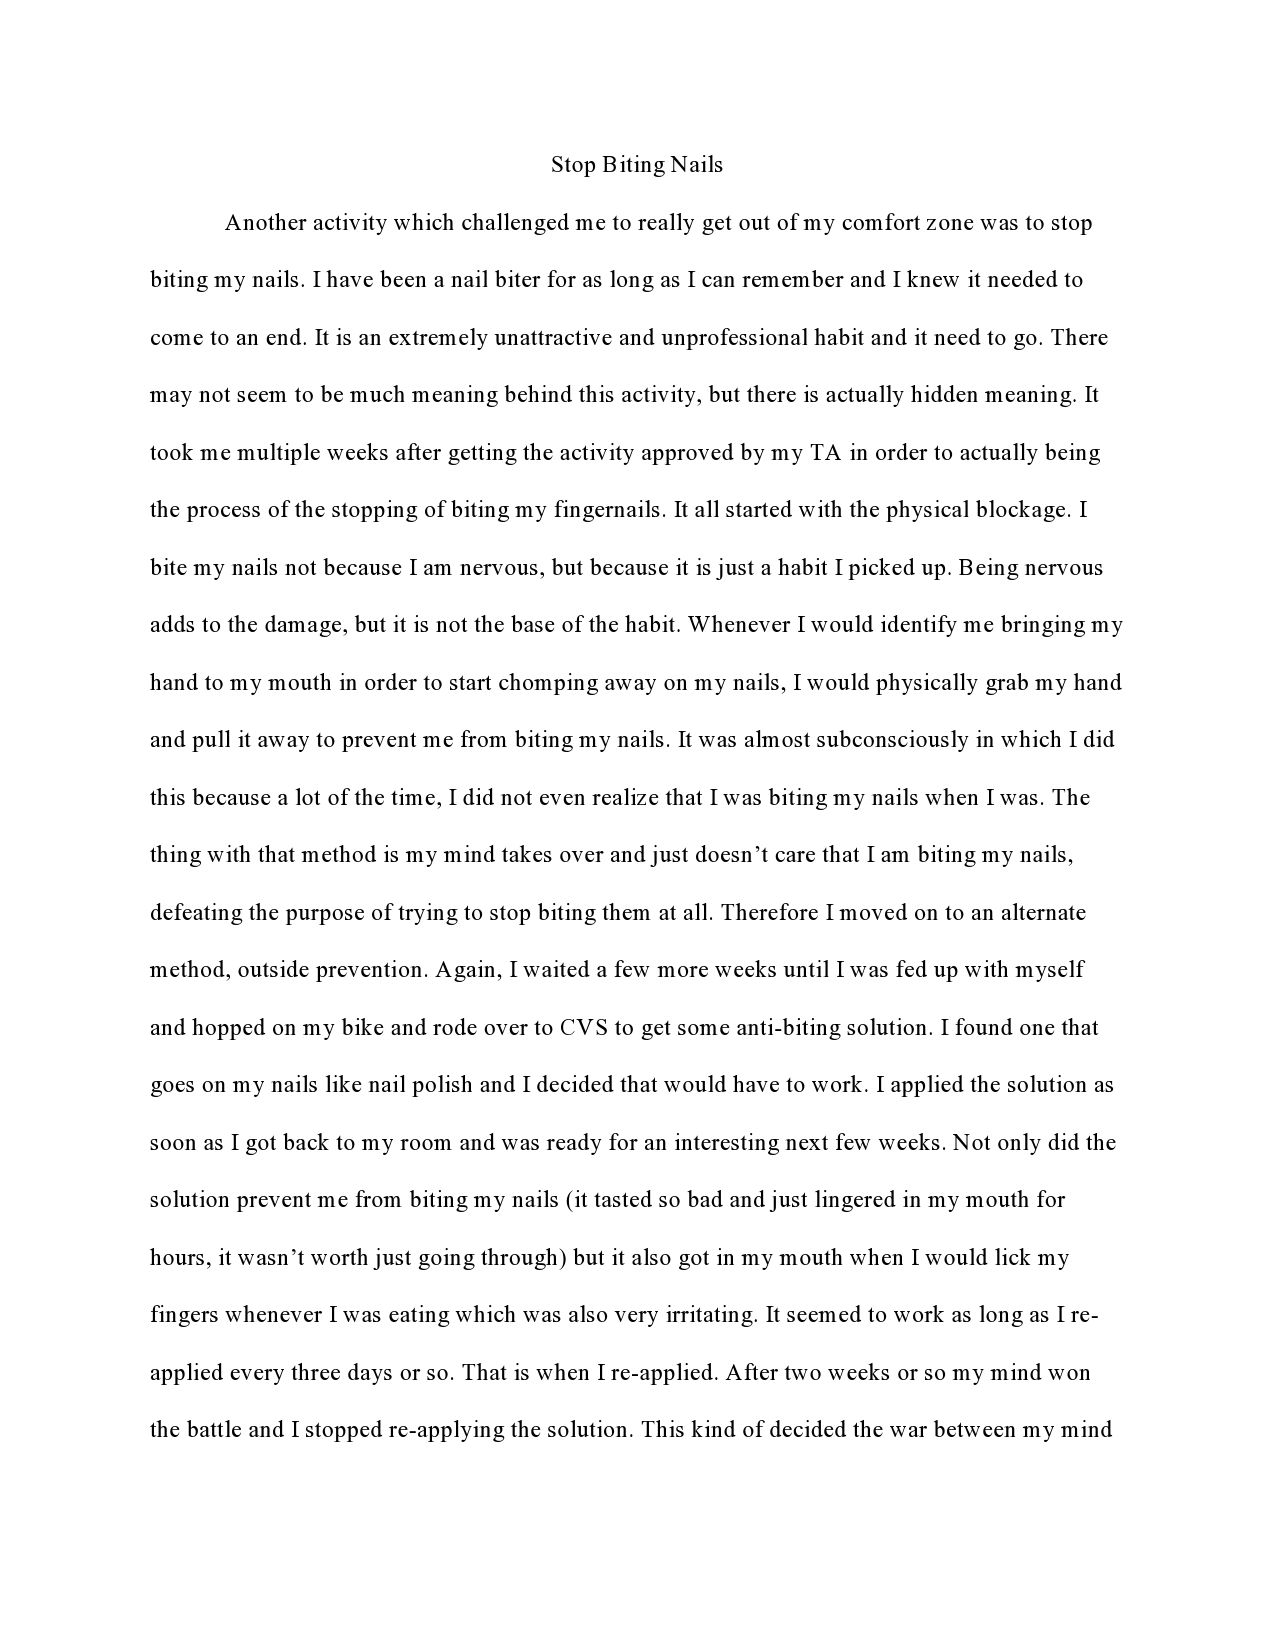 Page 1 Of Reflection Essay Philosophy Informative About